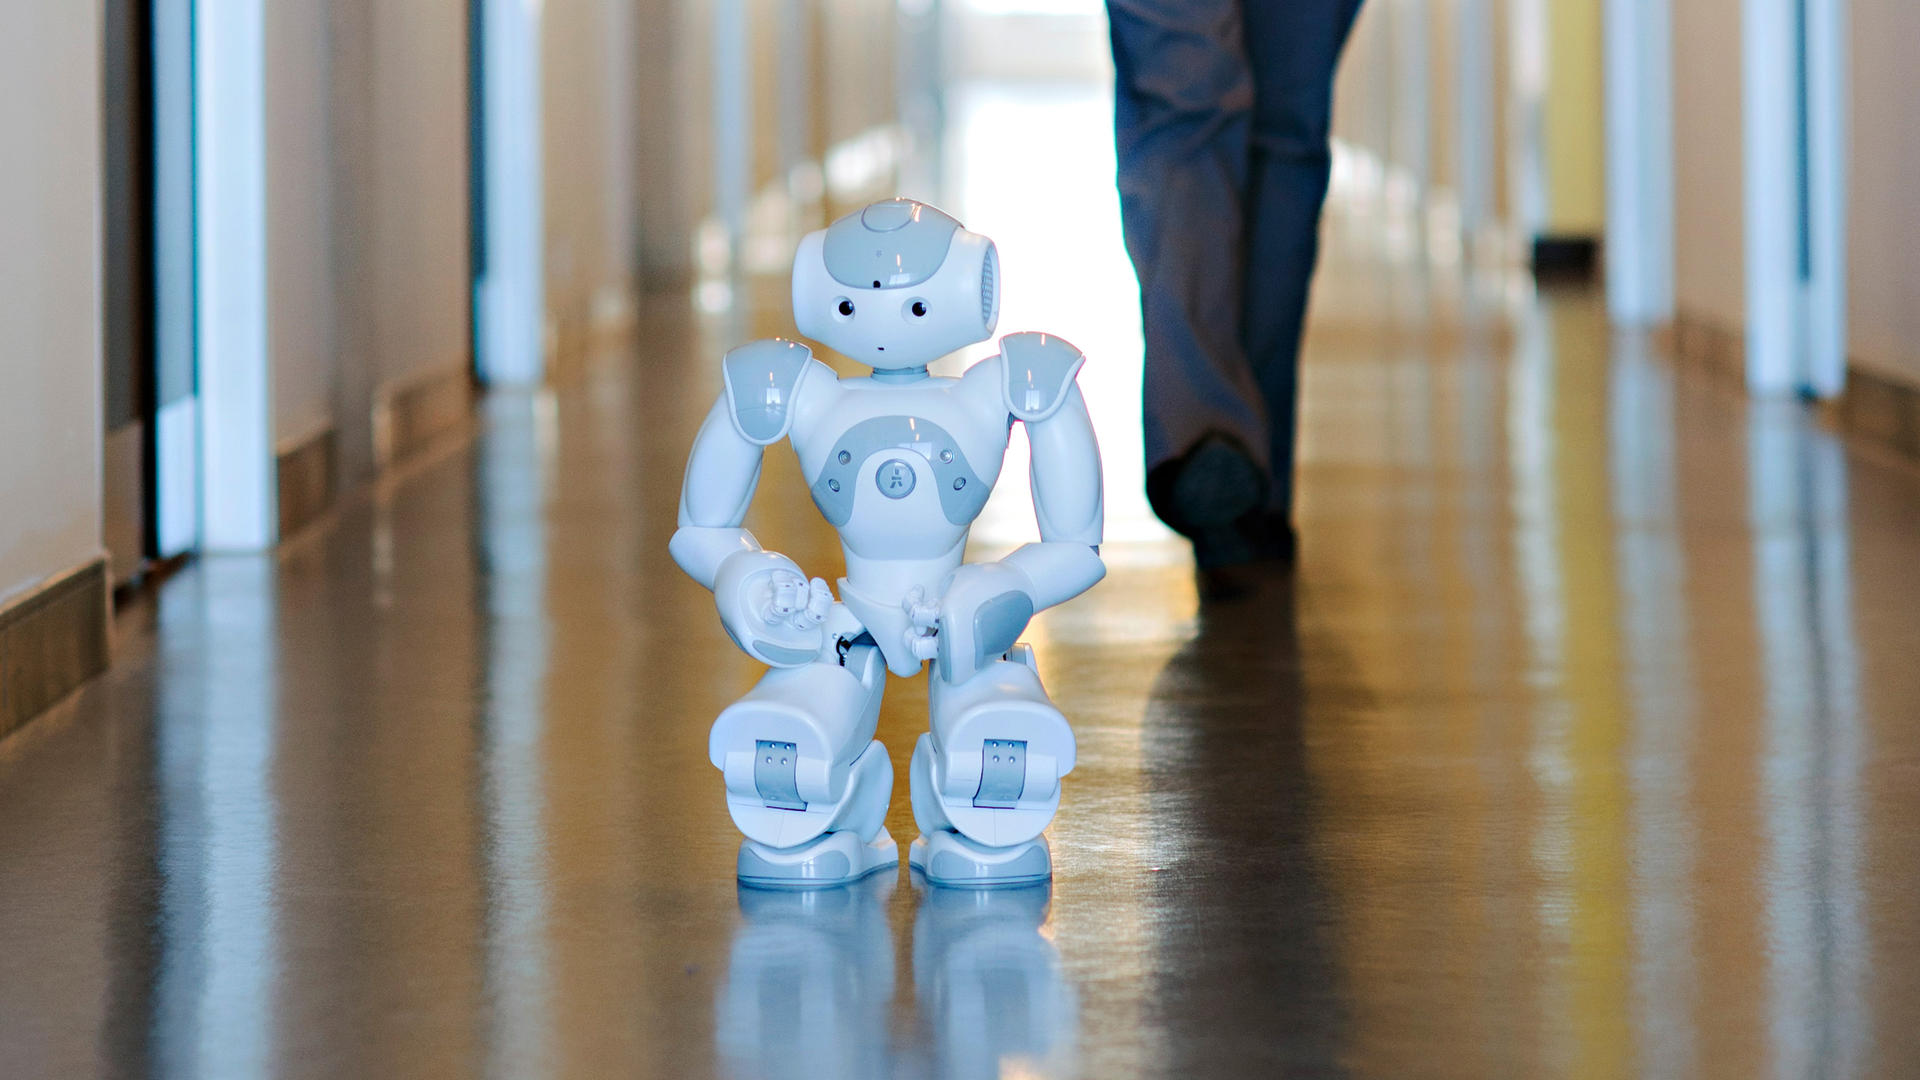 NAO robot crouching in a hallway